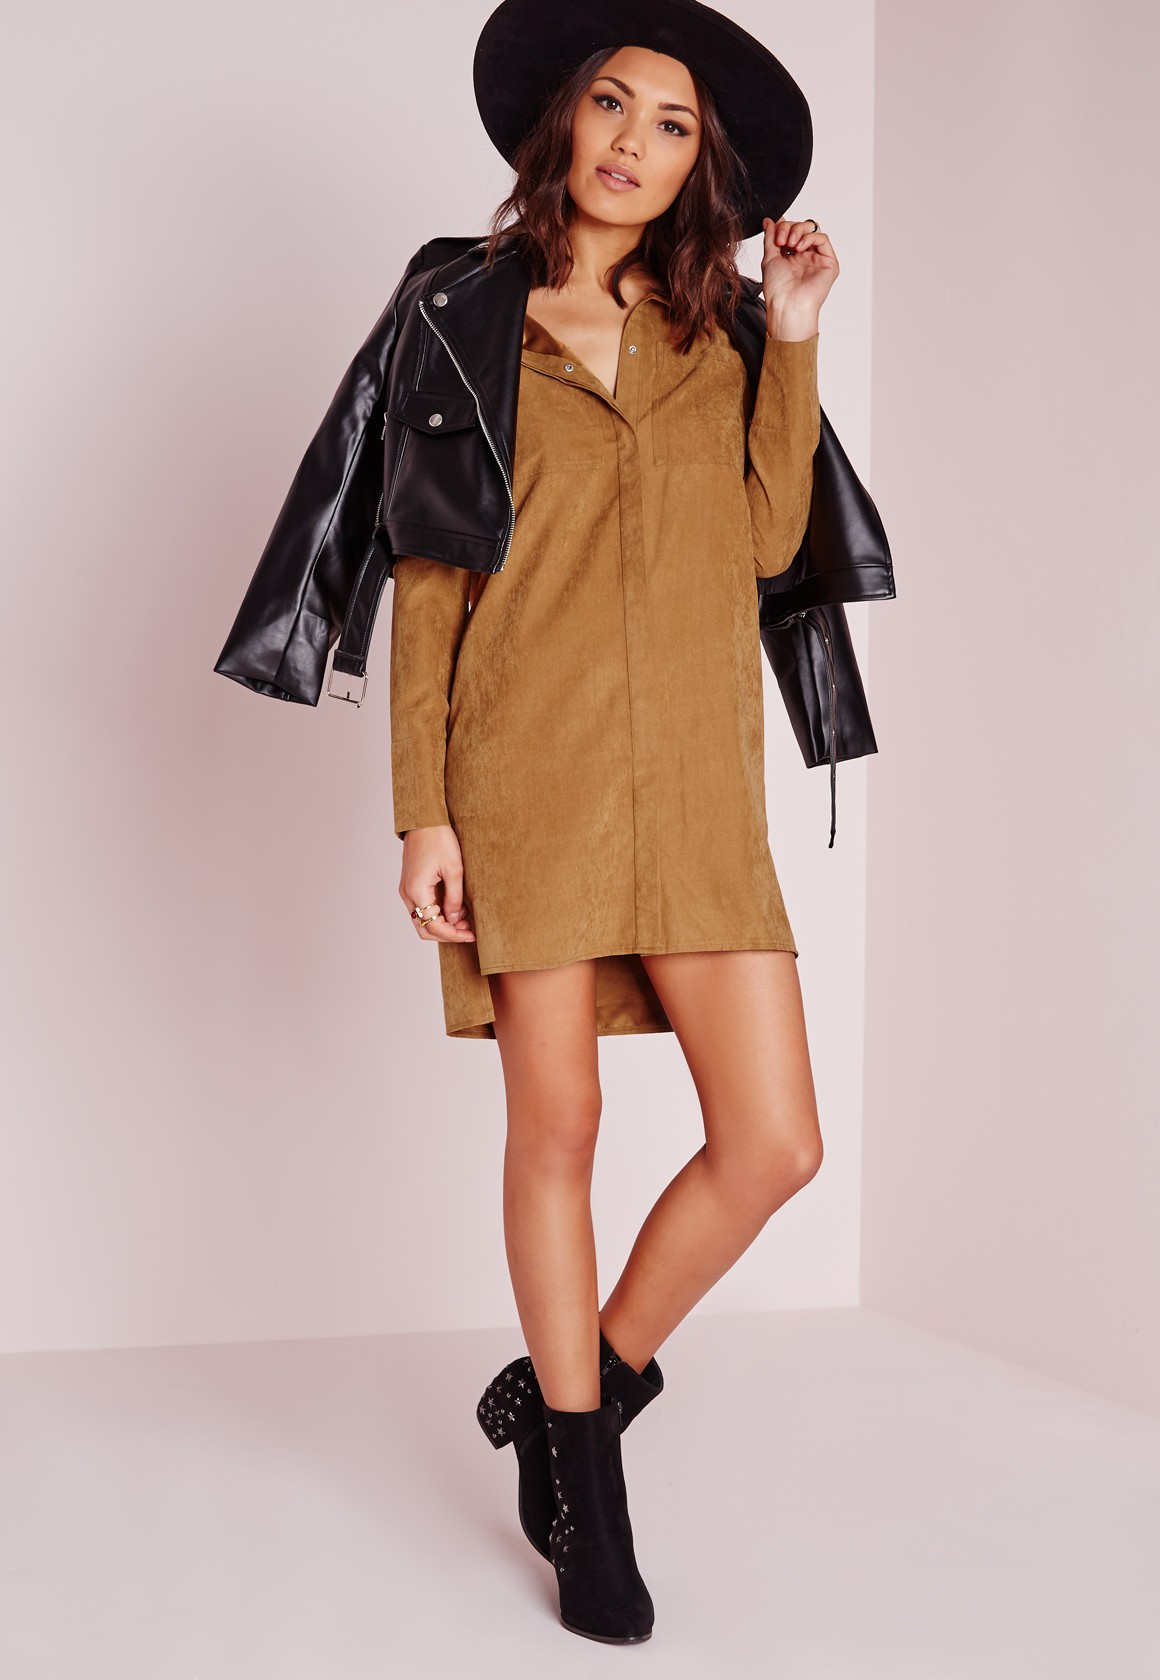 missguided-suede-dress.jpg